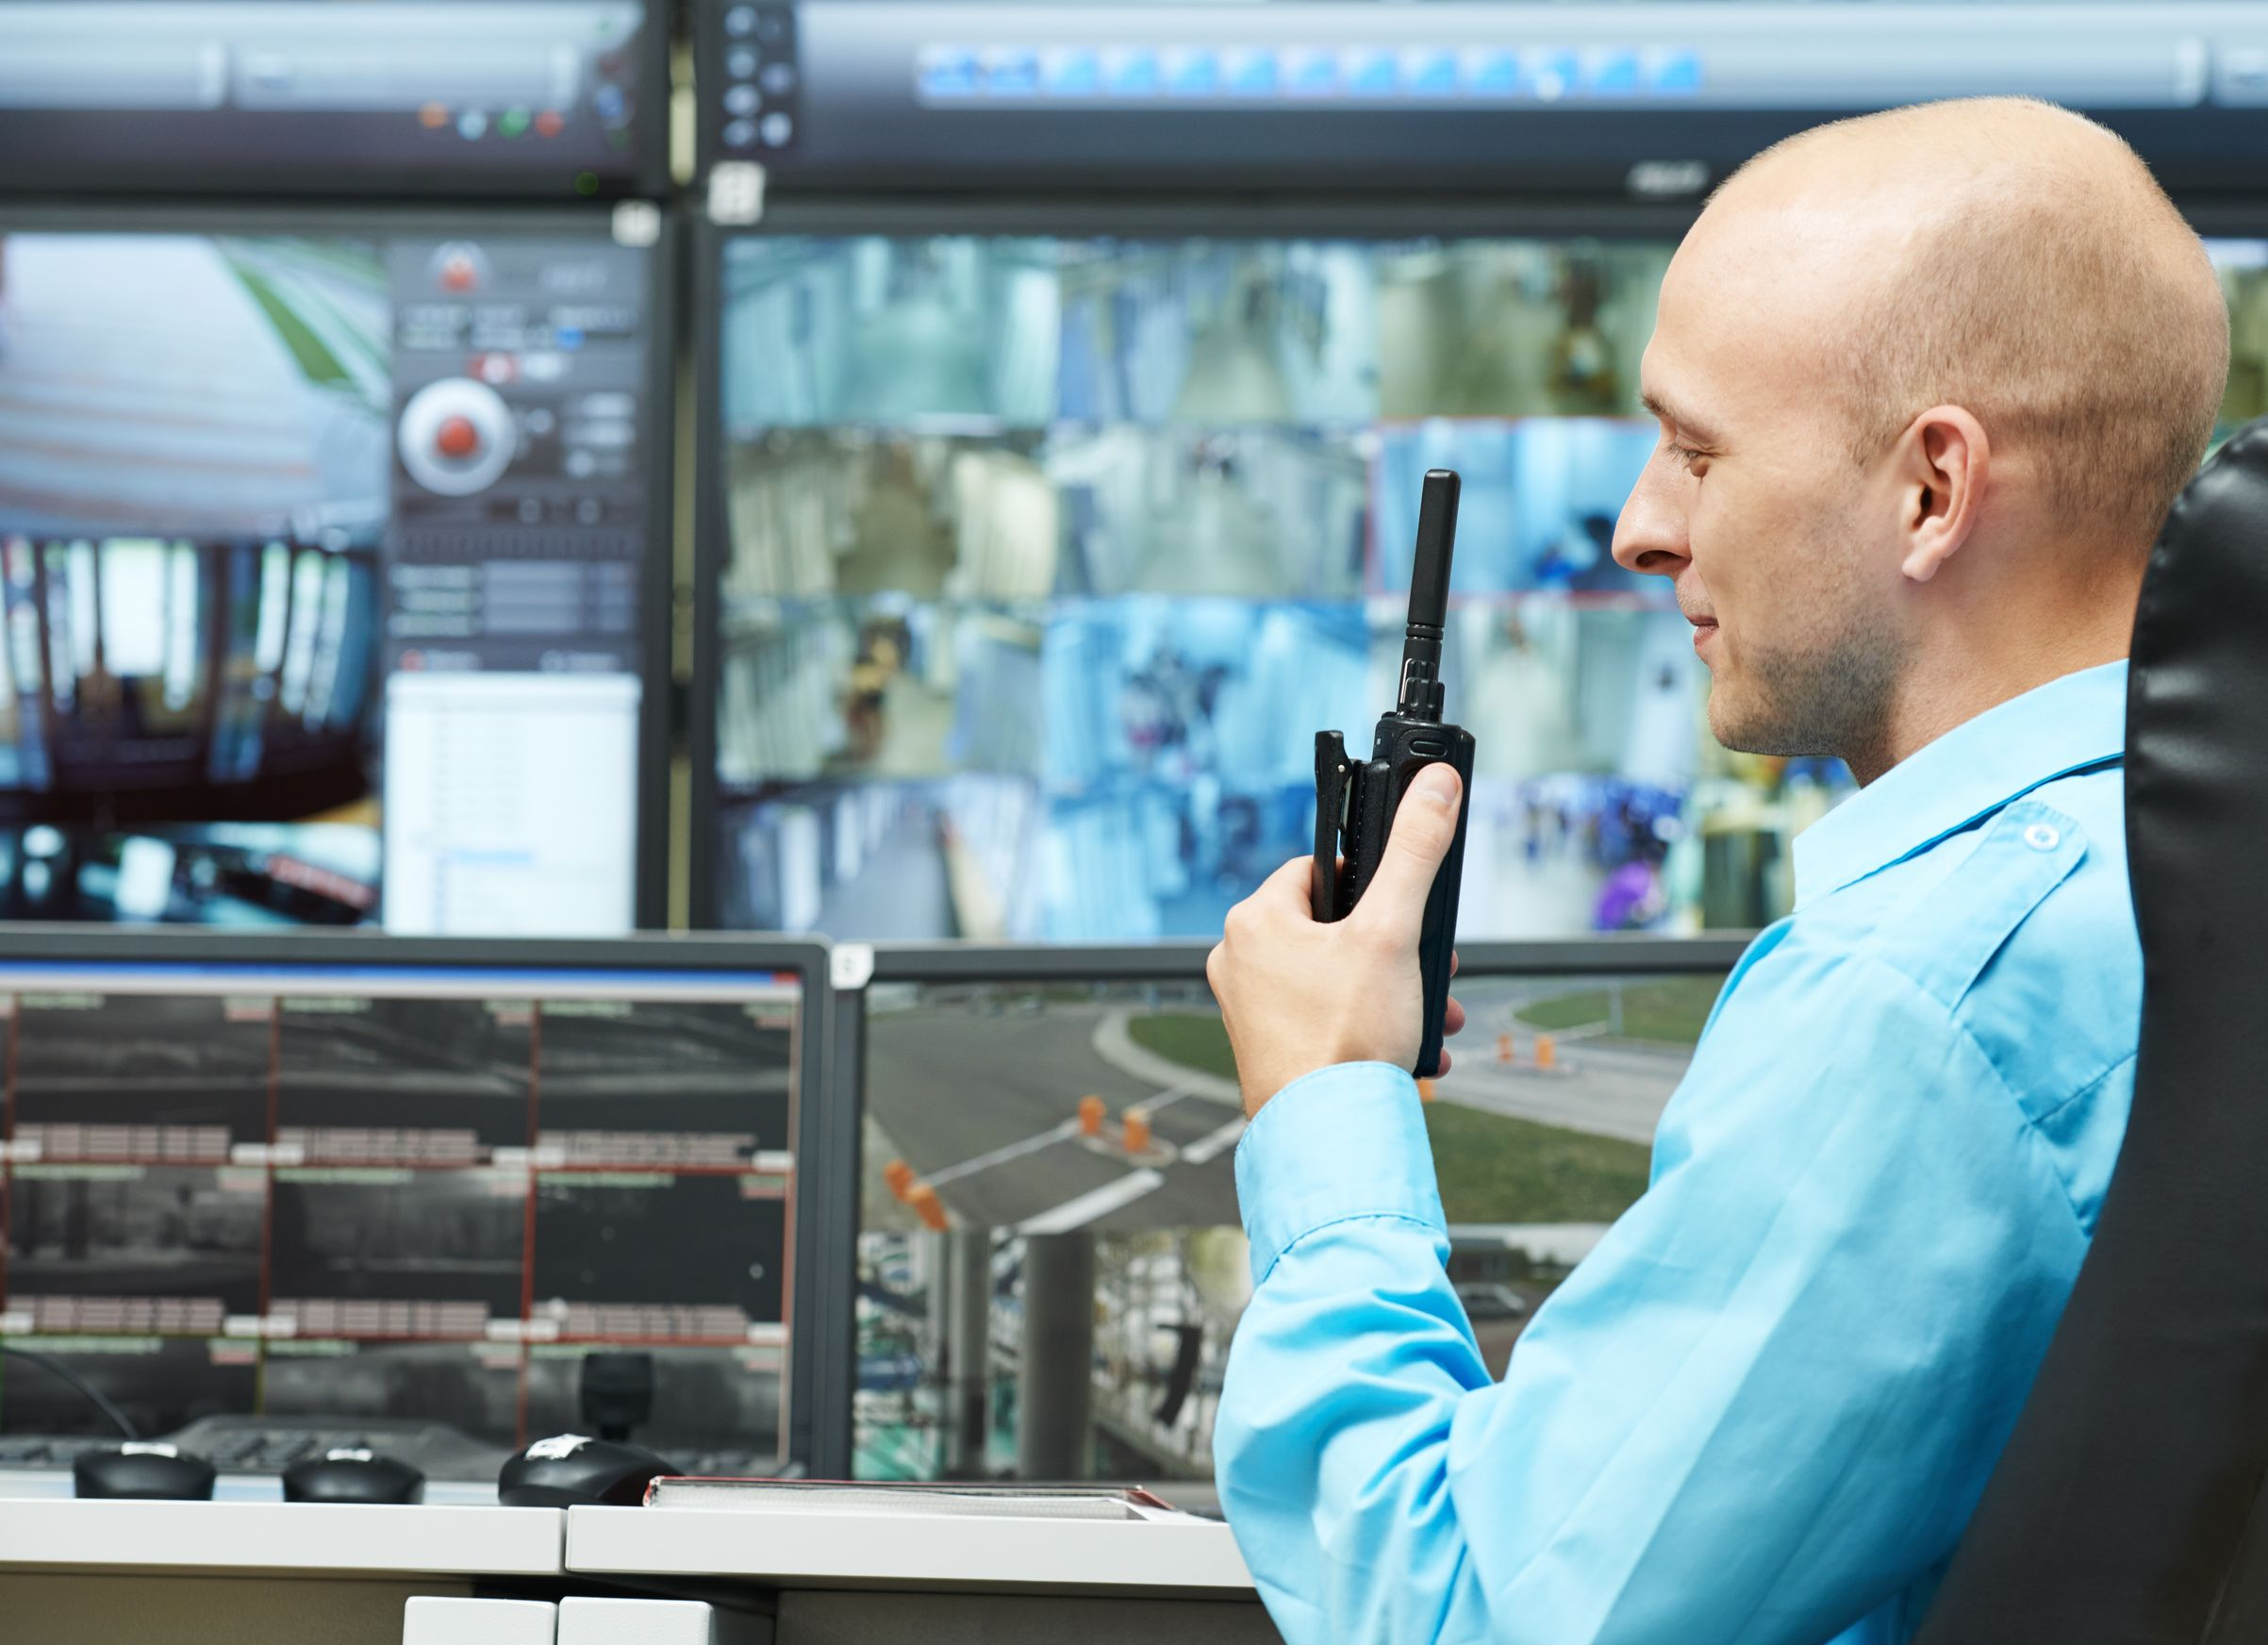 CCTV Monitoring: An Essential Tool for Protecting the Modern Business